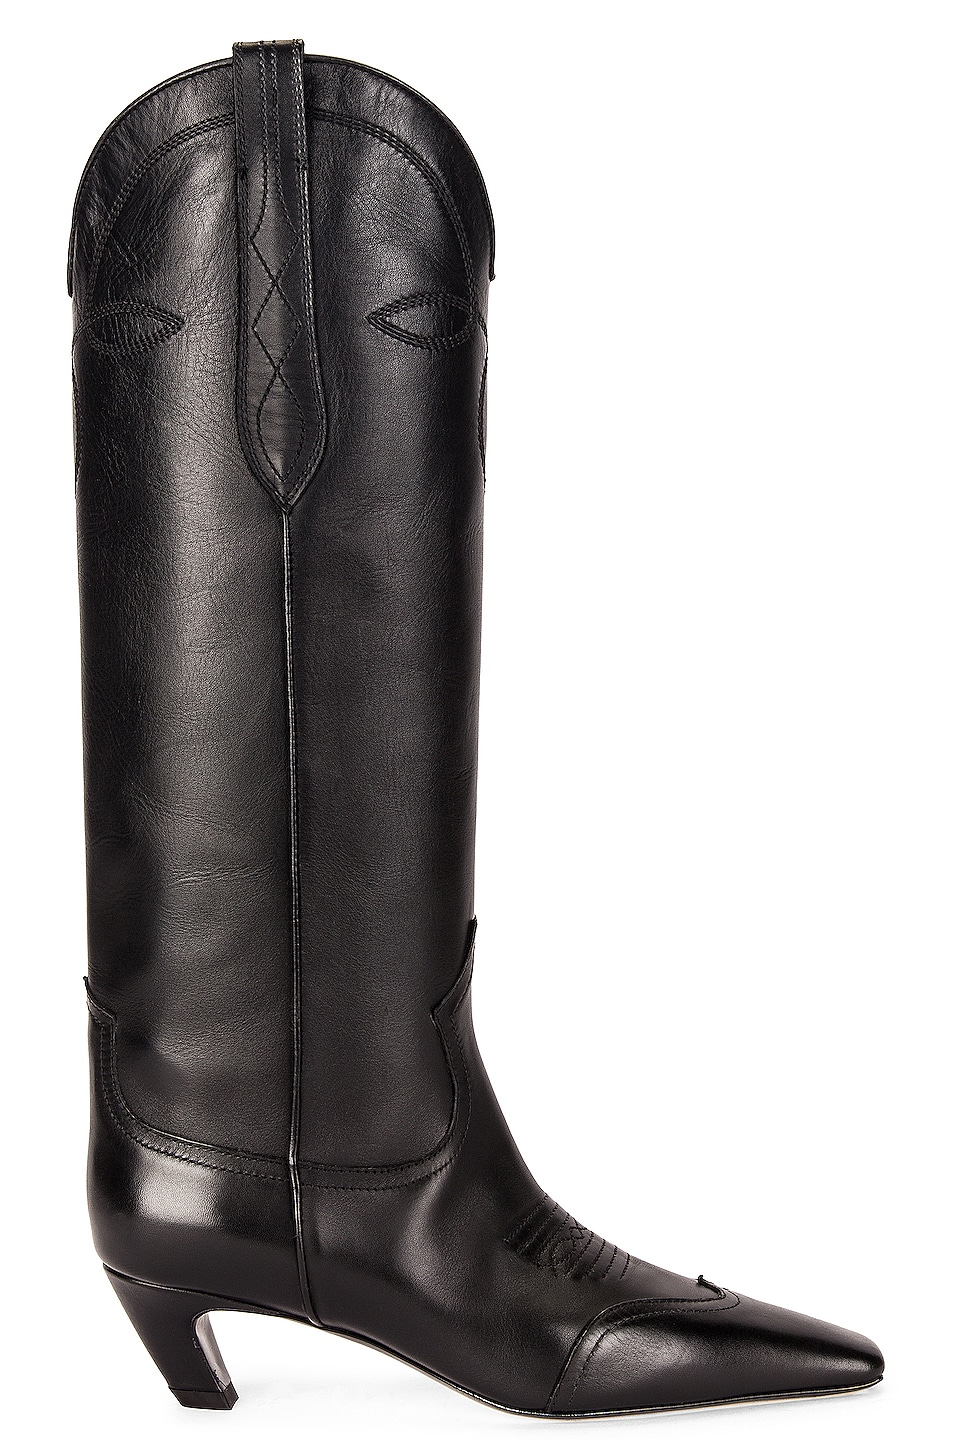 Dallas Boots by KHAITE, available on fwrd.com for $1380 Kendall Jenner Shoes Exact Product